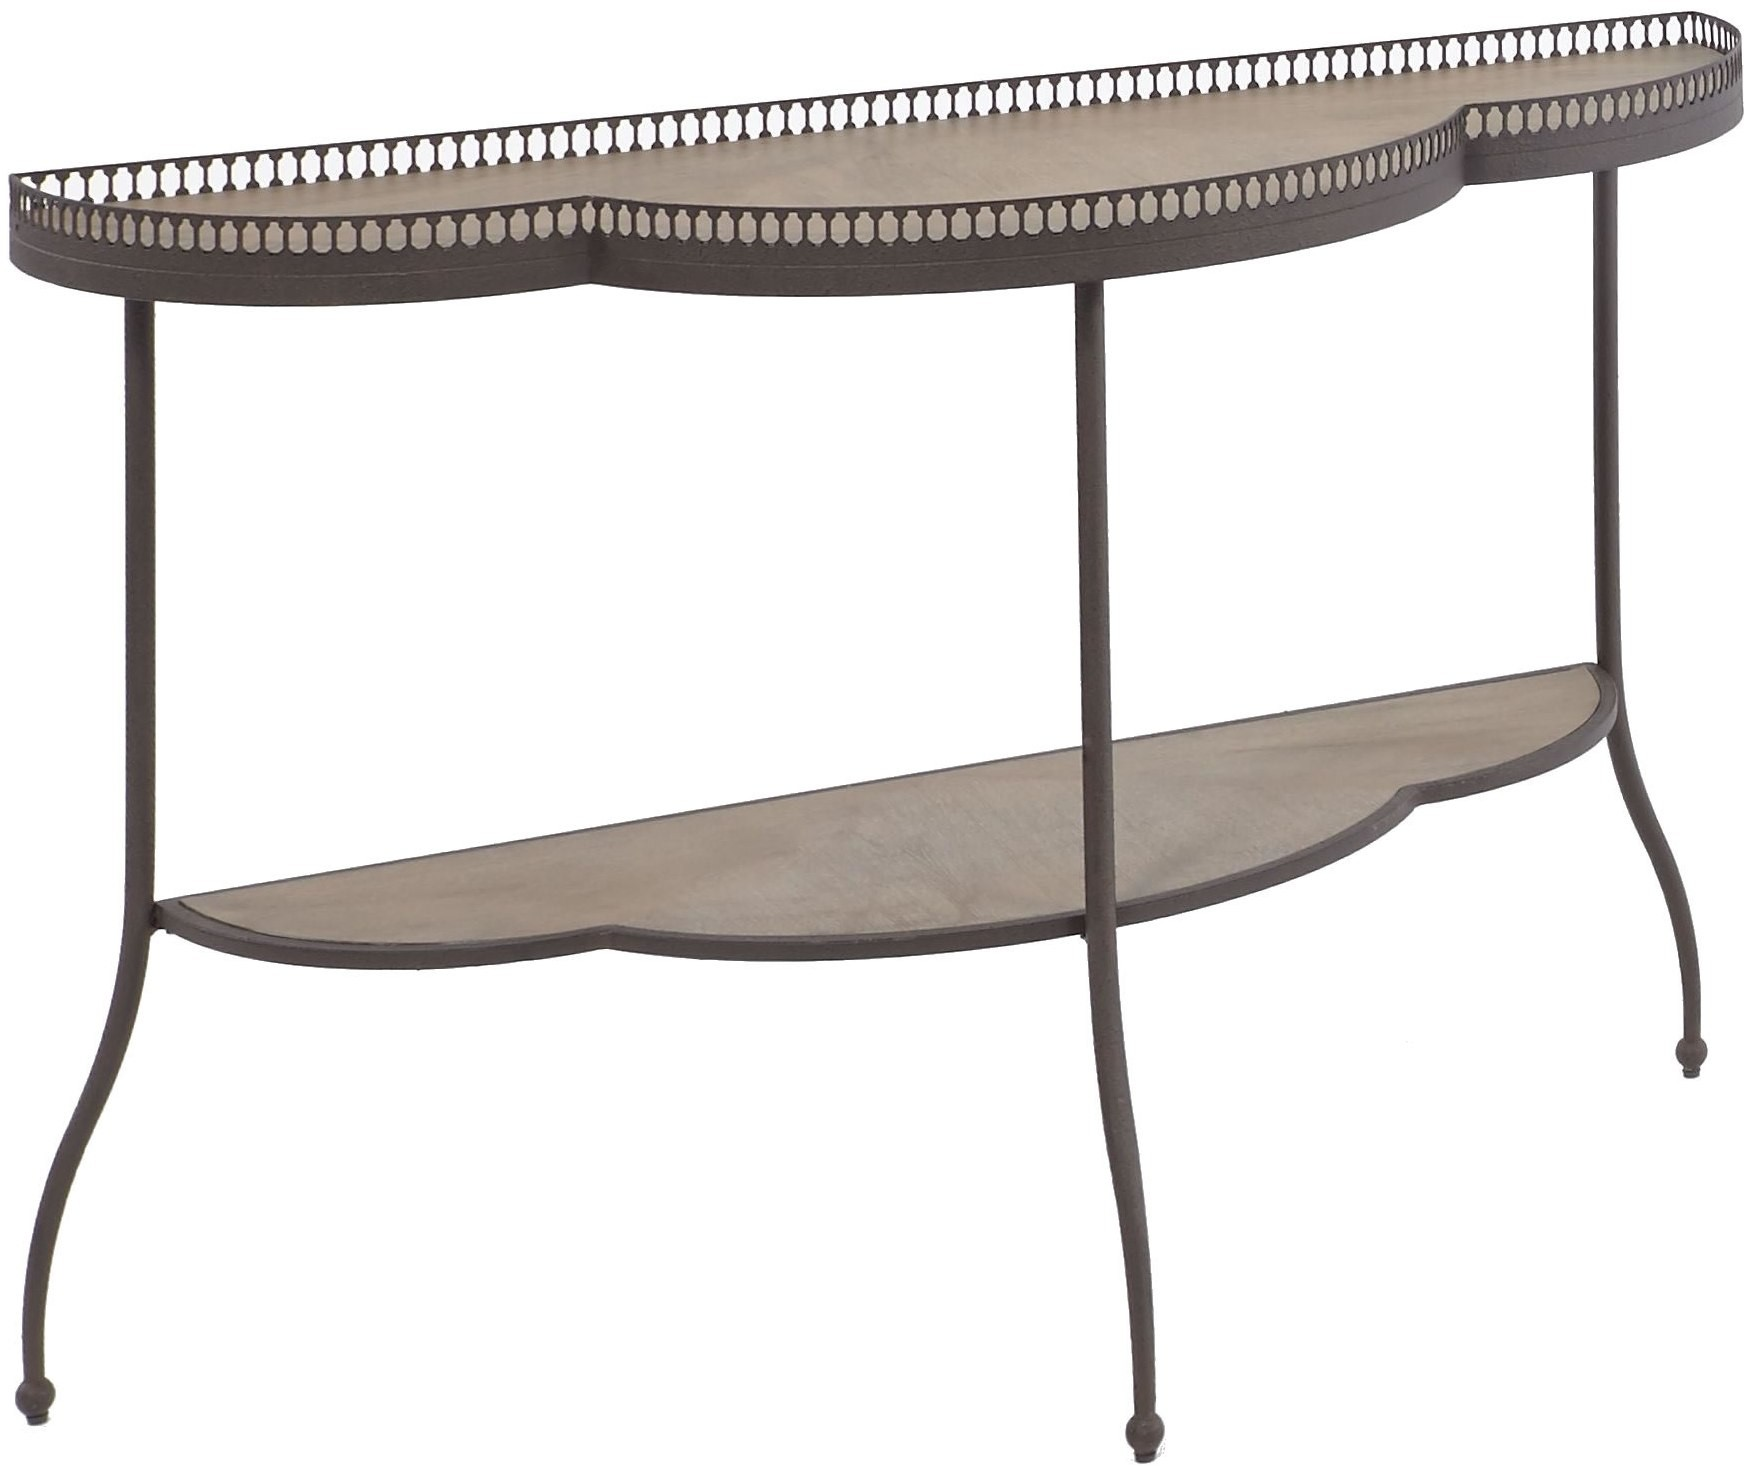 Clementine distressed armor gray and bisque scalloped sofa for Sofa table 70